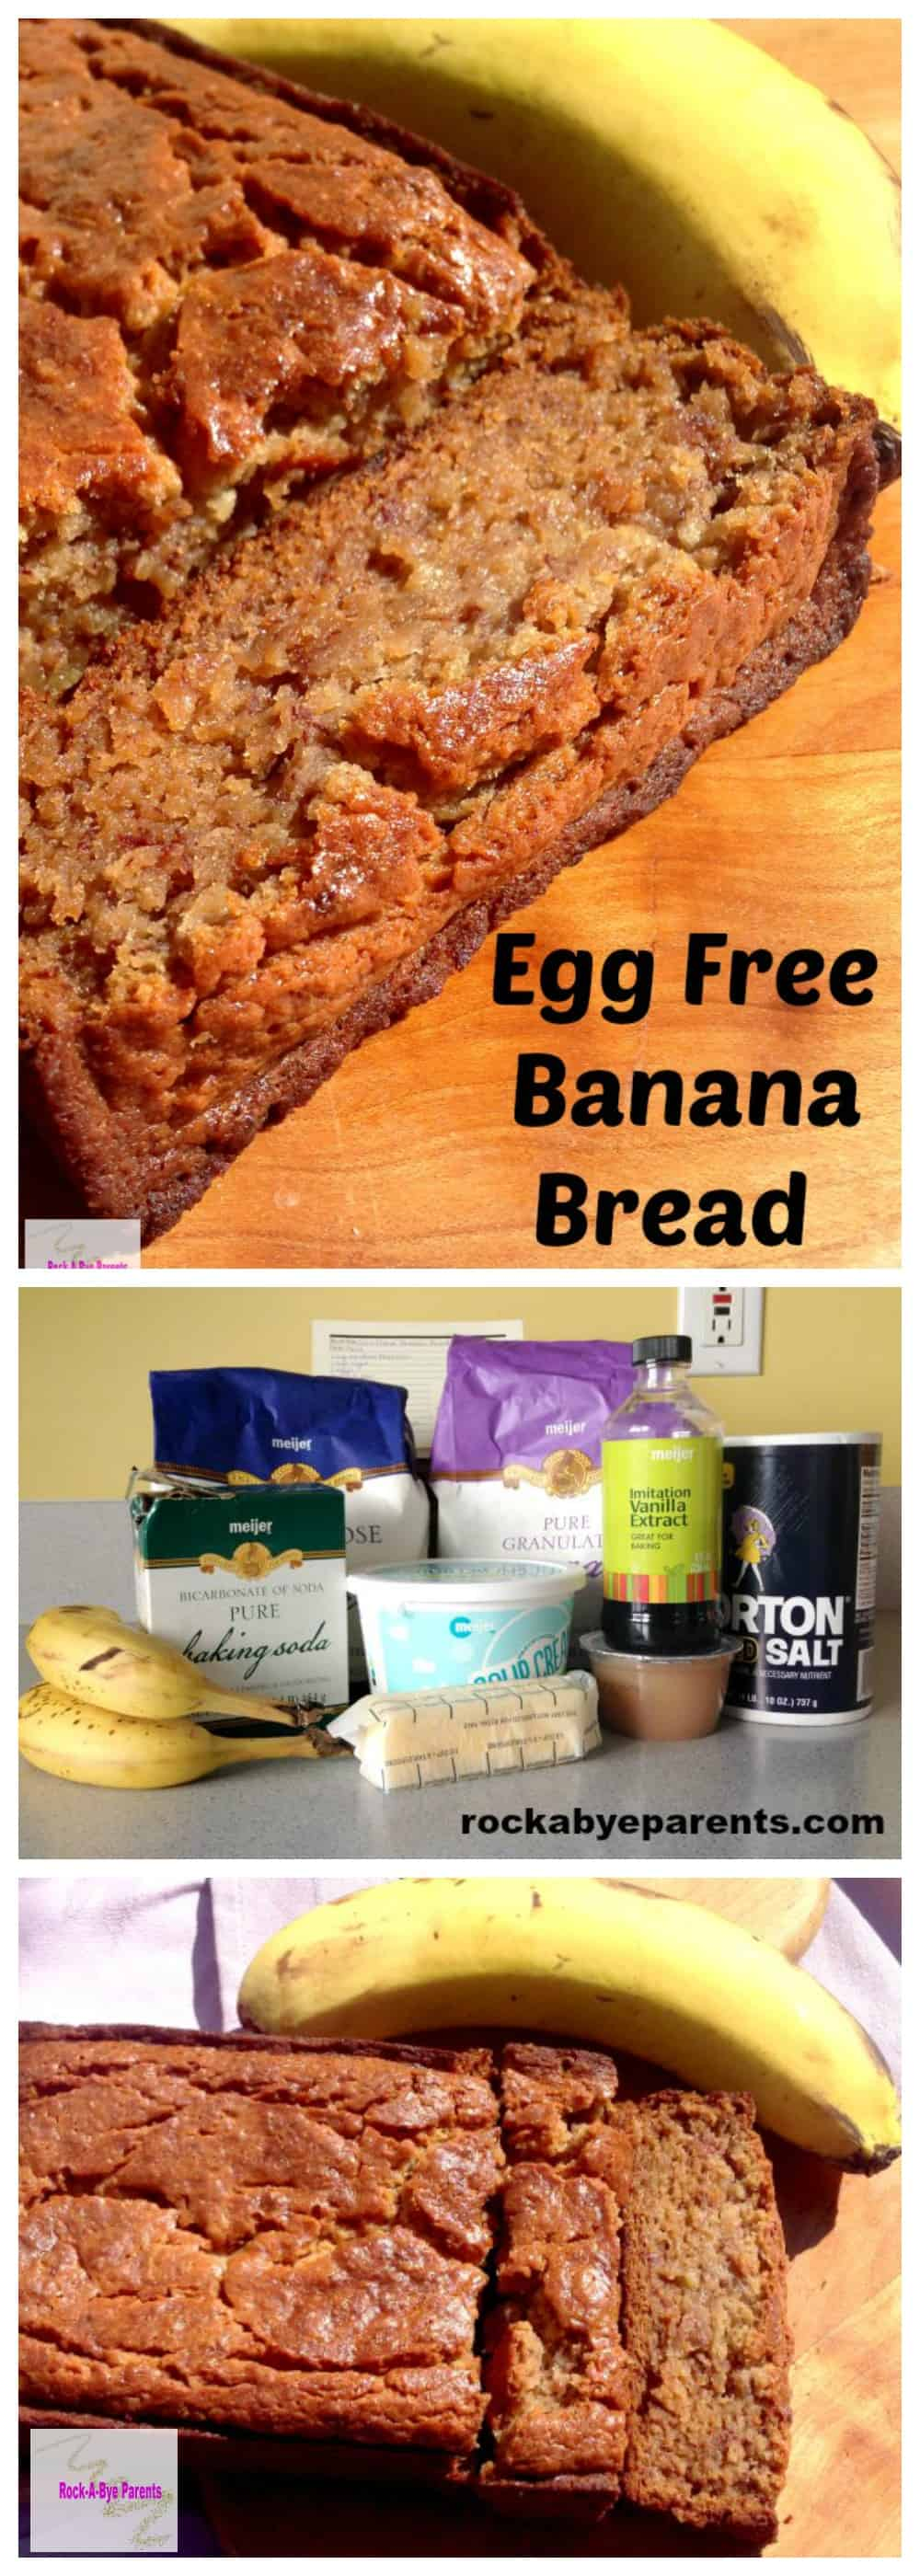 This egg free banana bread recipe is moist, yummy, and so easy to make. It is modified from a recipe for sour cream banana bread.